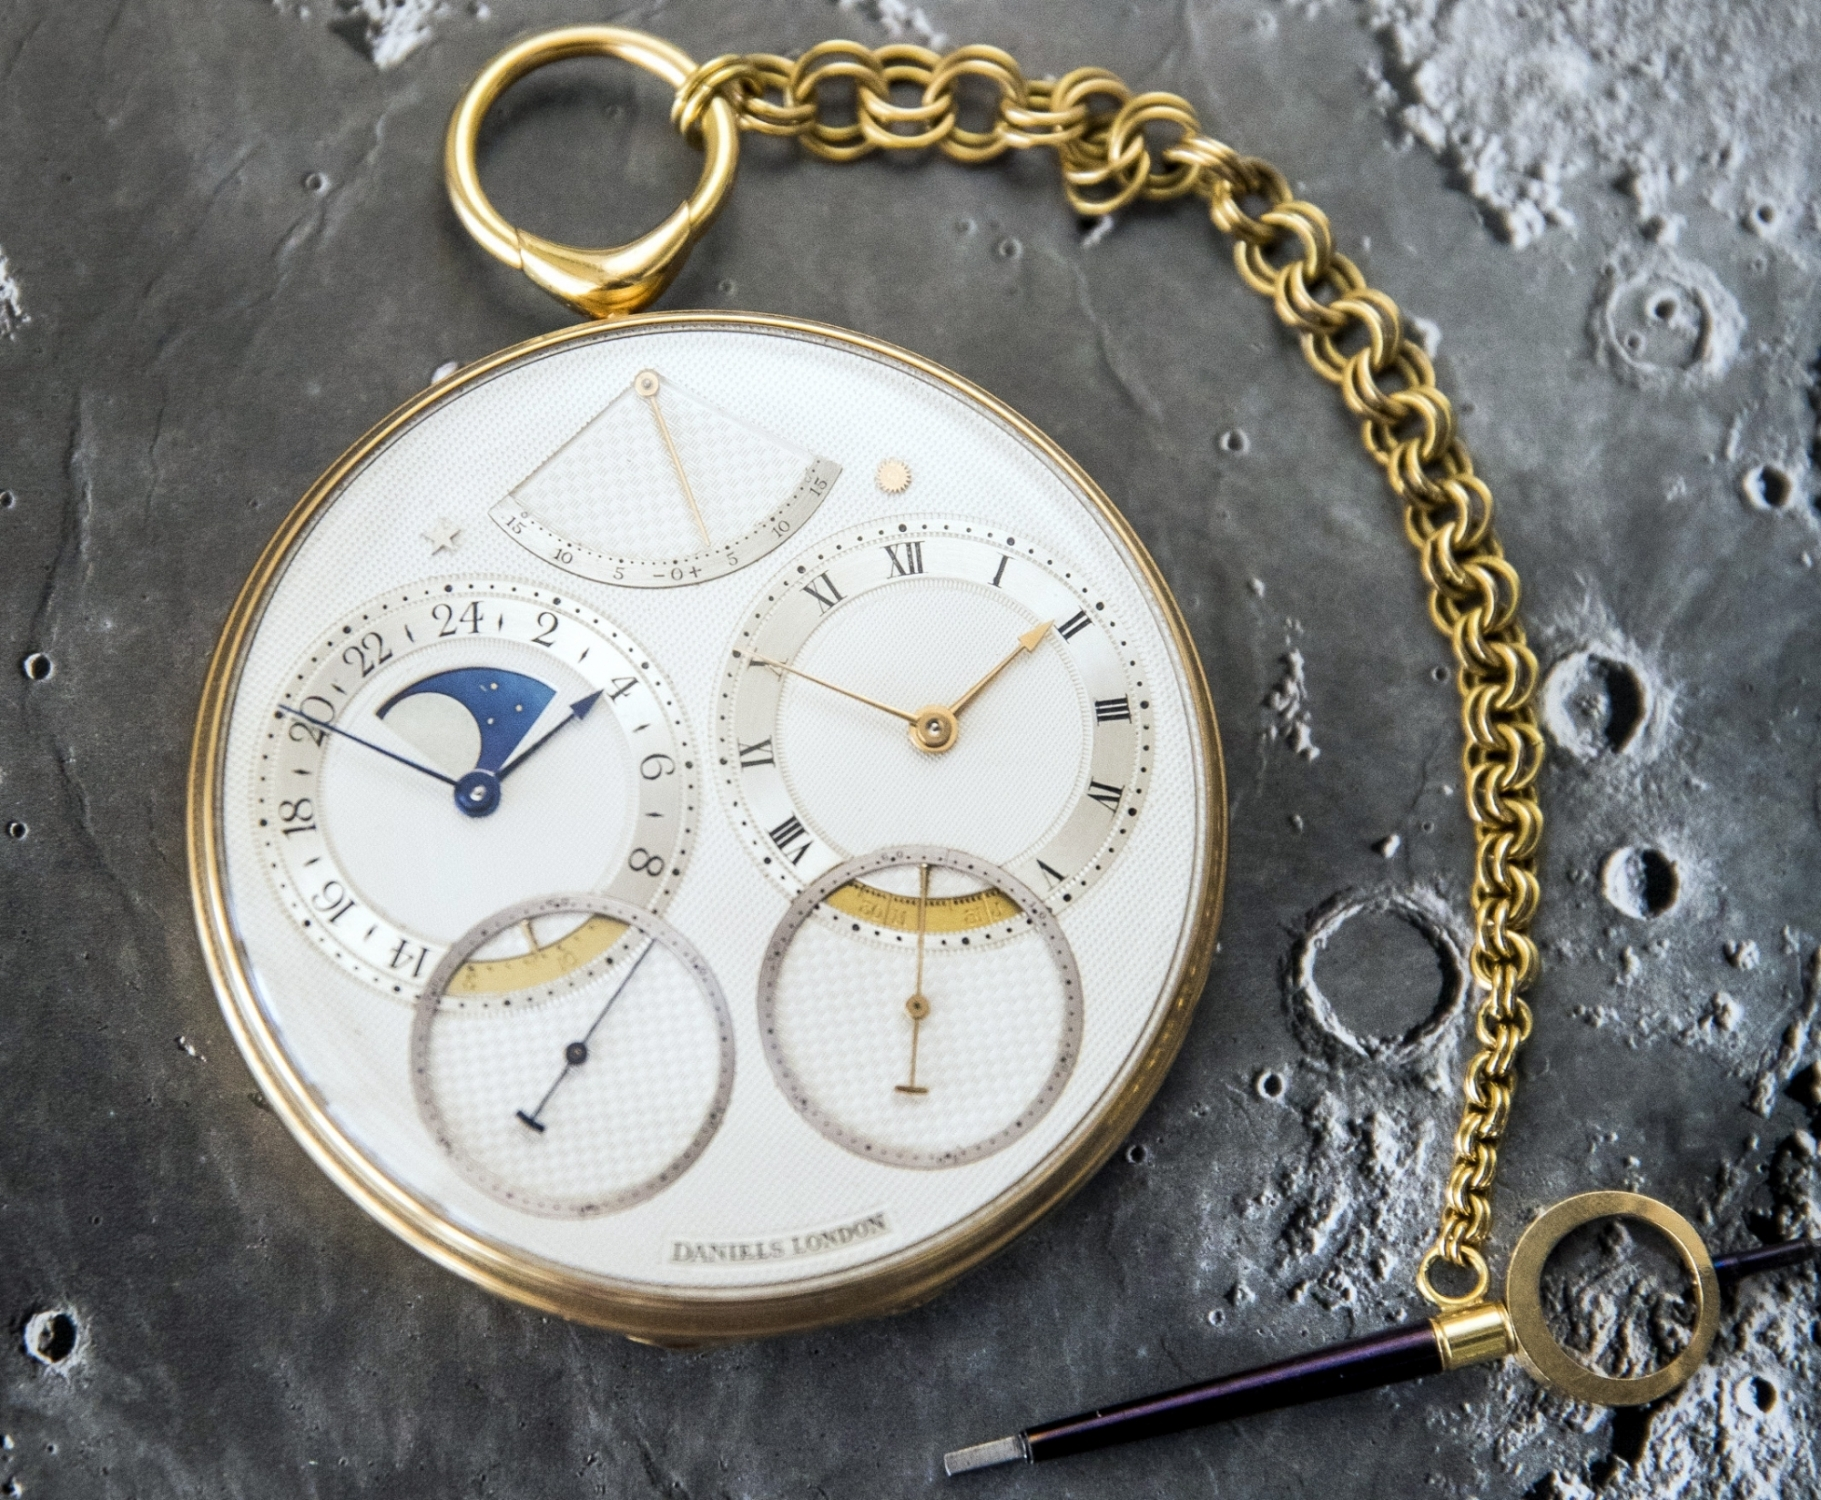 English pocket watch sells for record price at auction